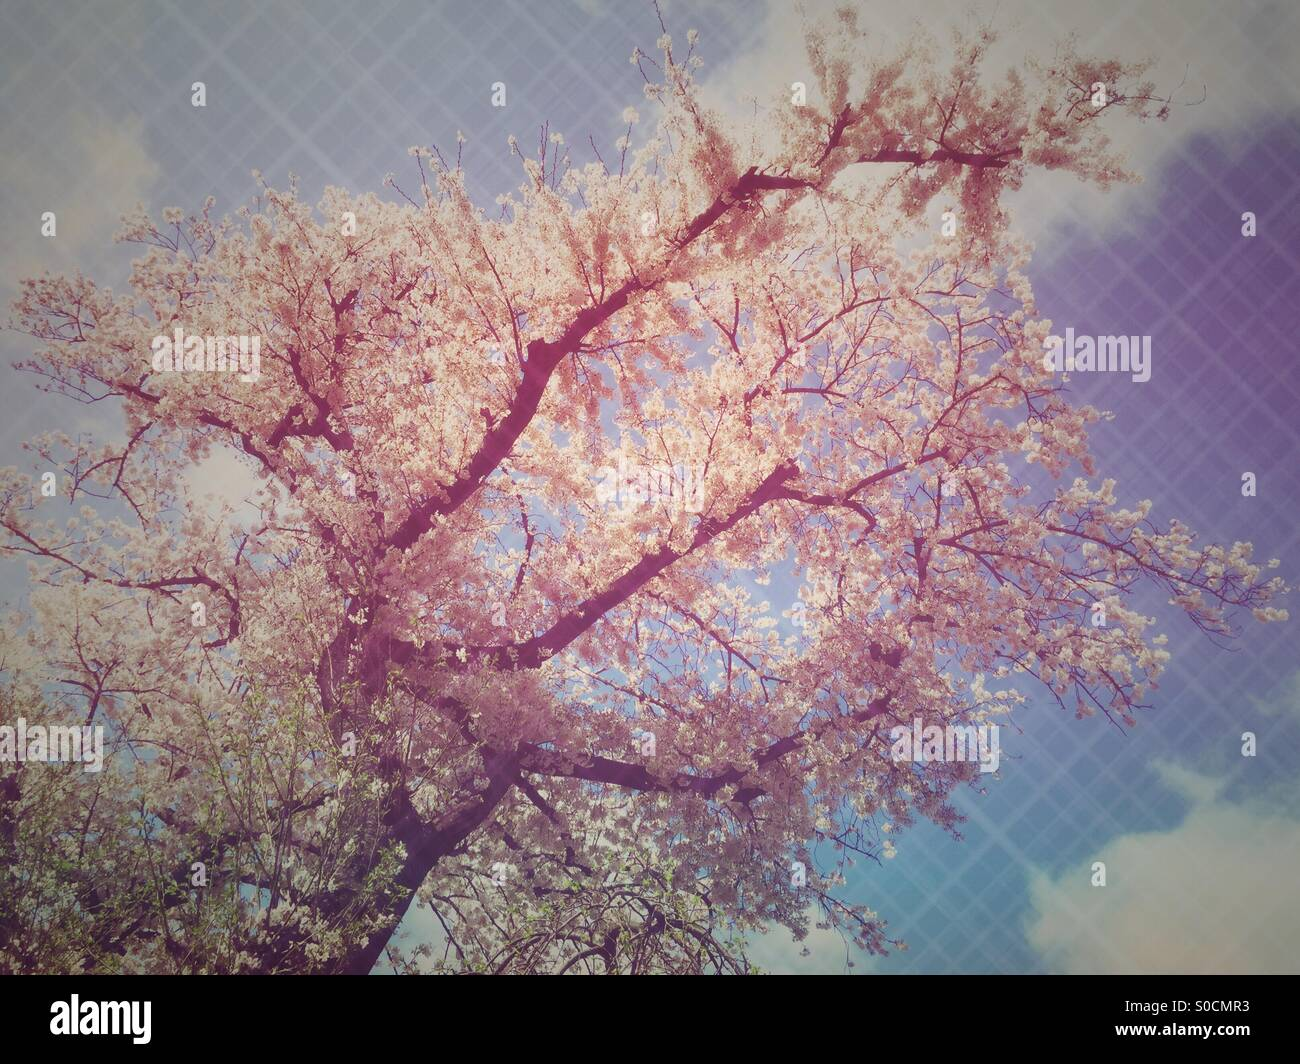 Sakura or cherry blossom tree with light pink blooms, blue sky and white clouds. Diamond knit pattern overlay. - Stock Image